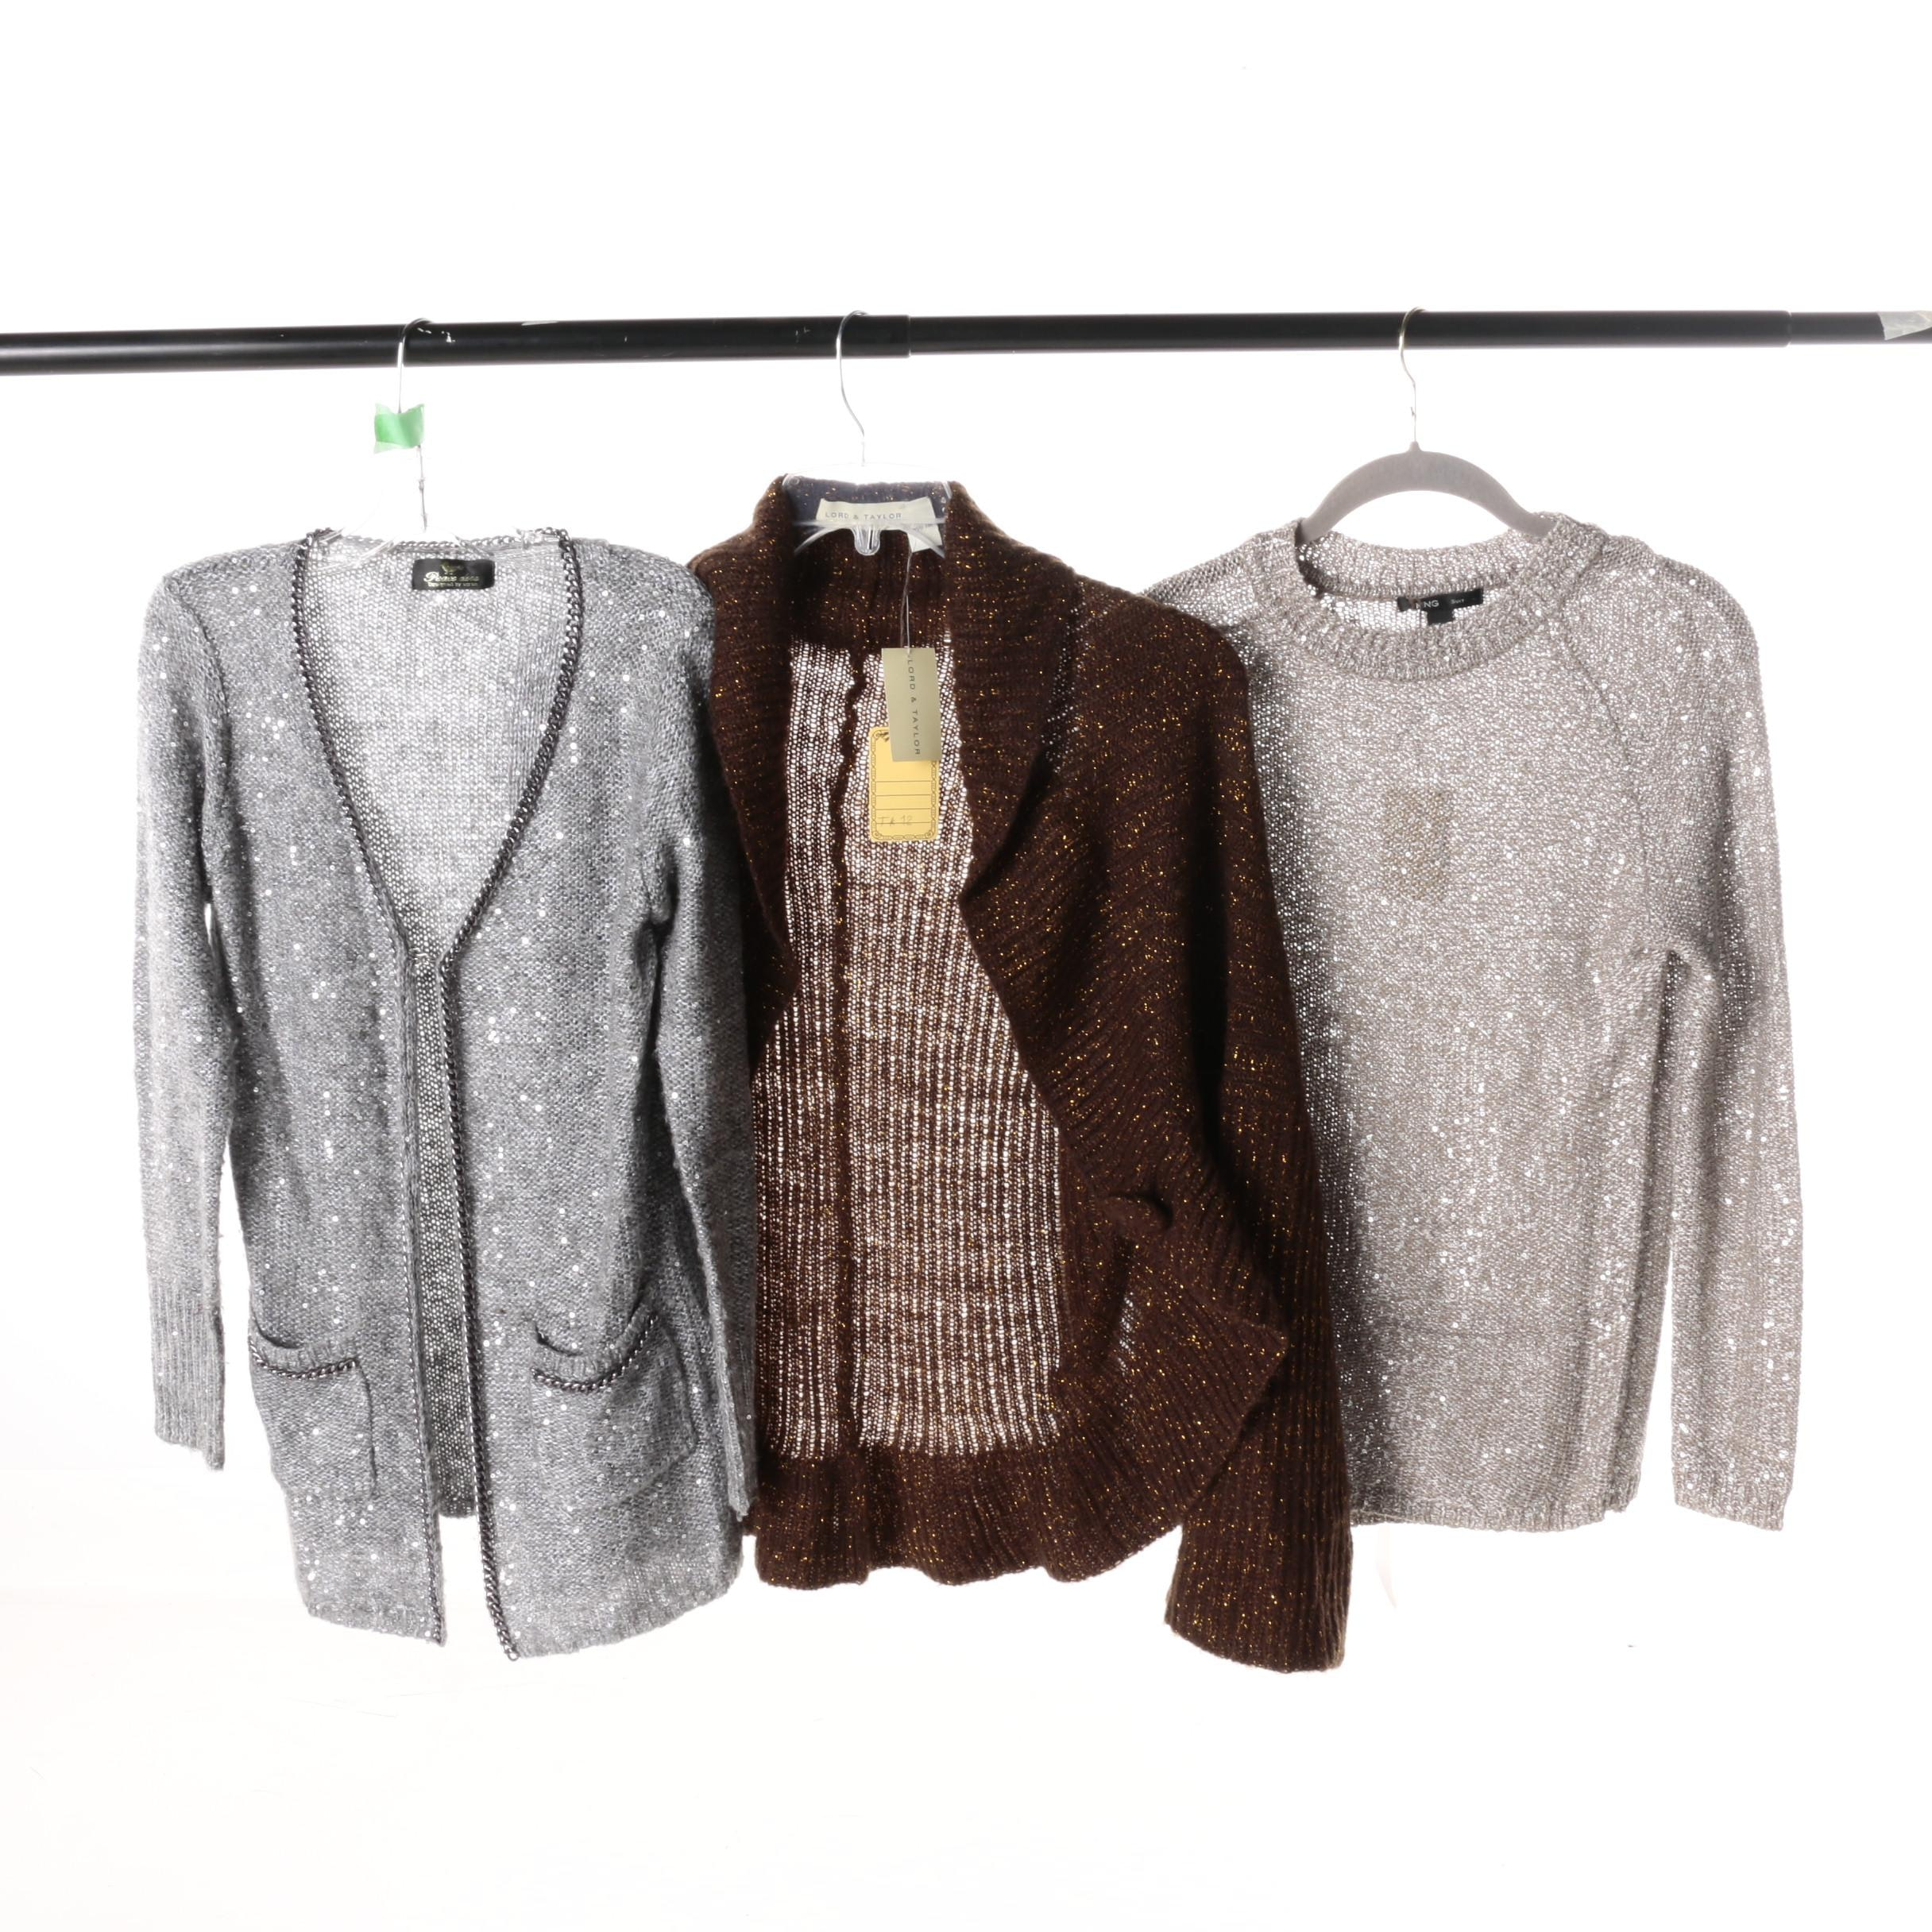 Women's Spangled Knit Sweaters